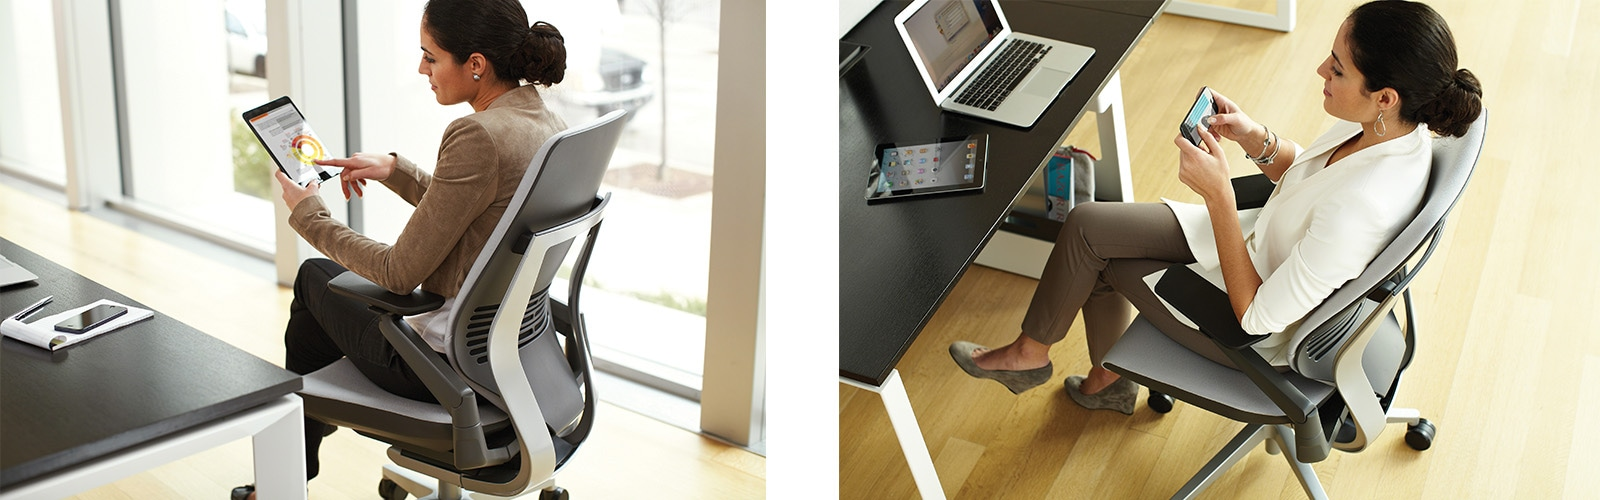 Steelcase Gesture chair is the perfect ergonomic office furniture solution